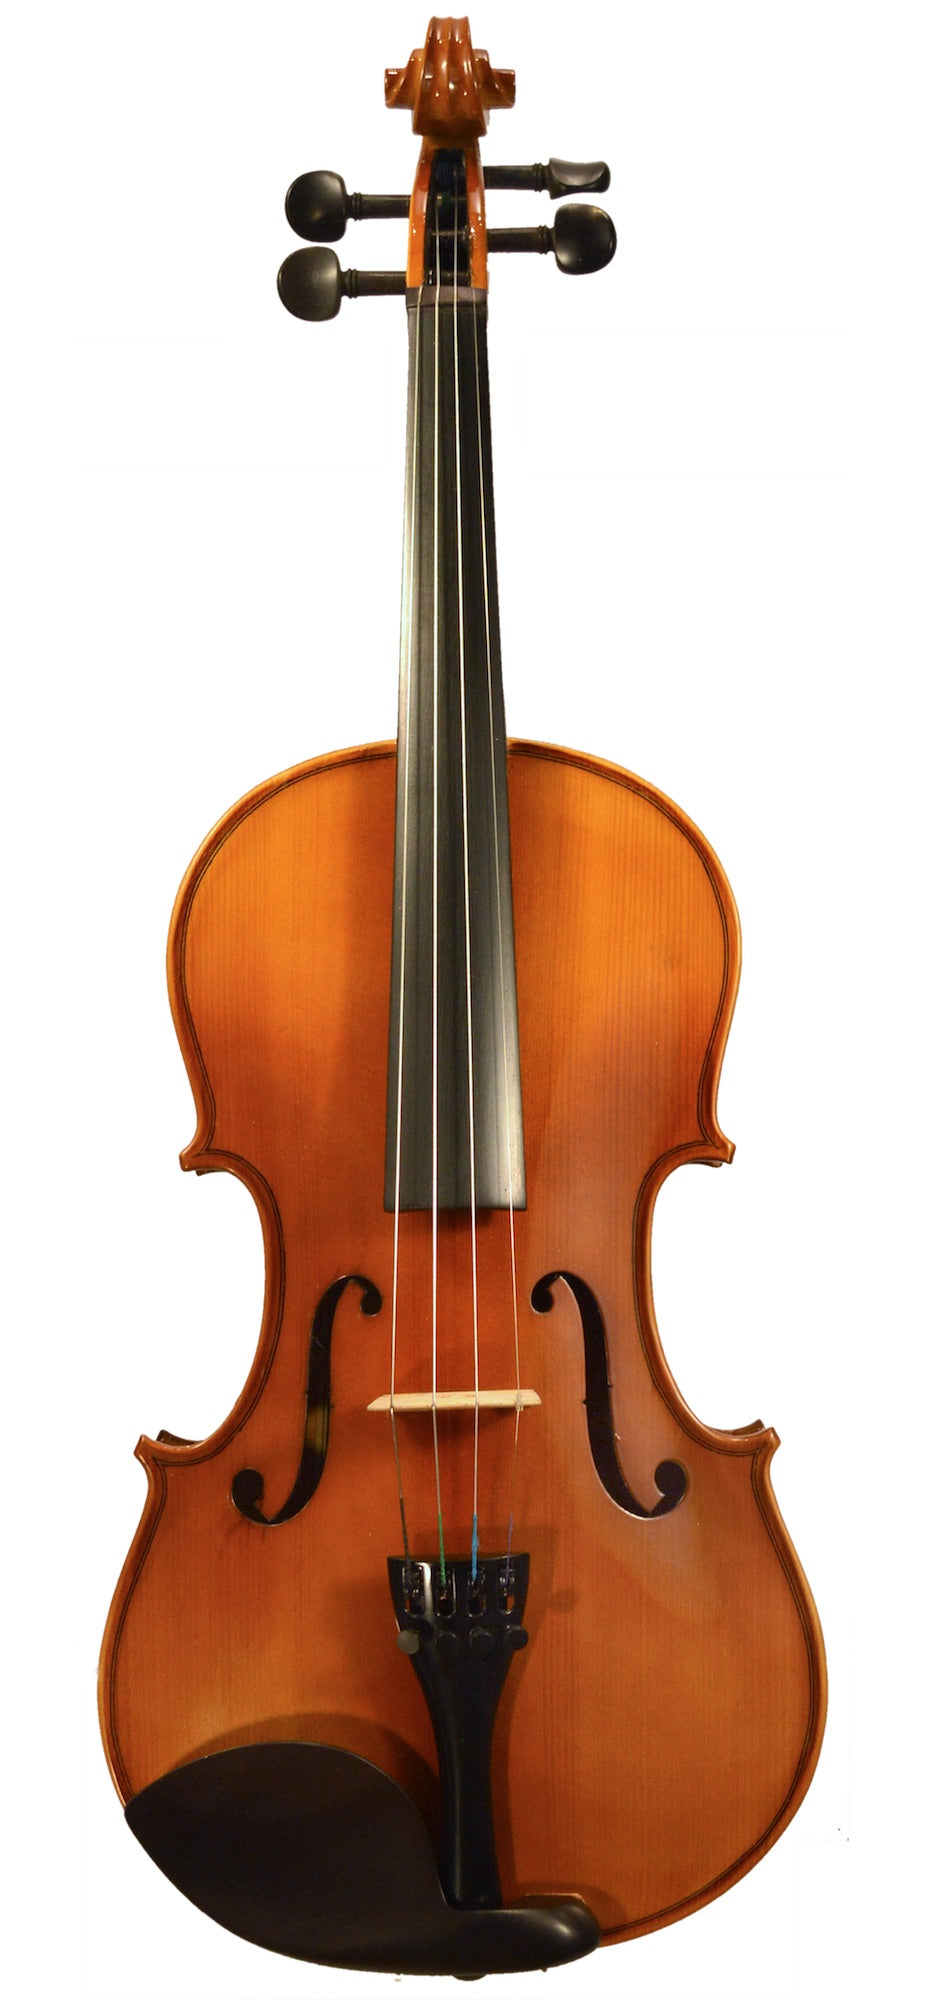 Sandner SV-300P Intermediate Student Violin